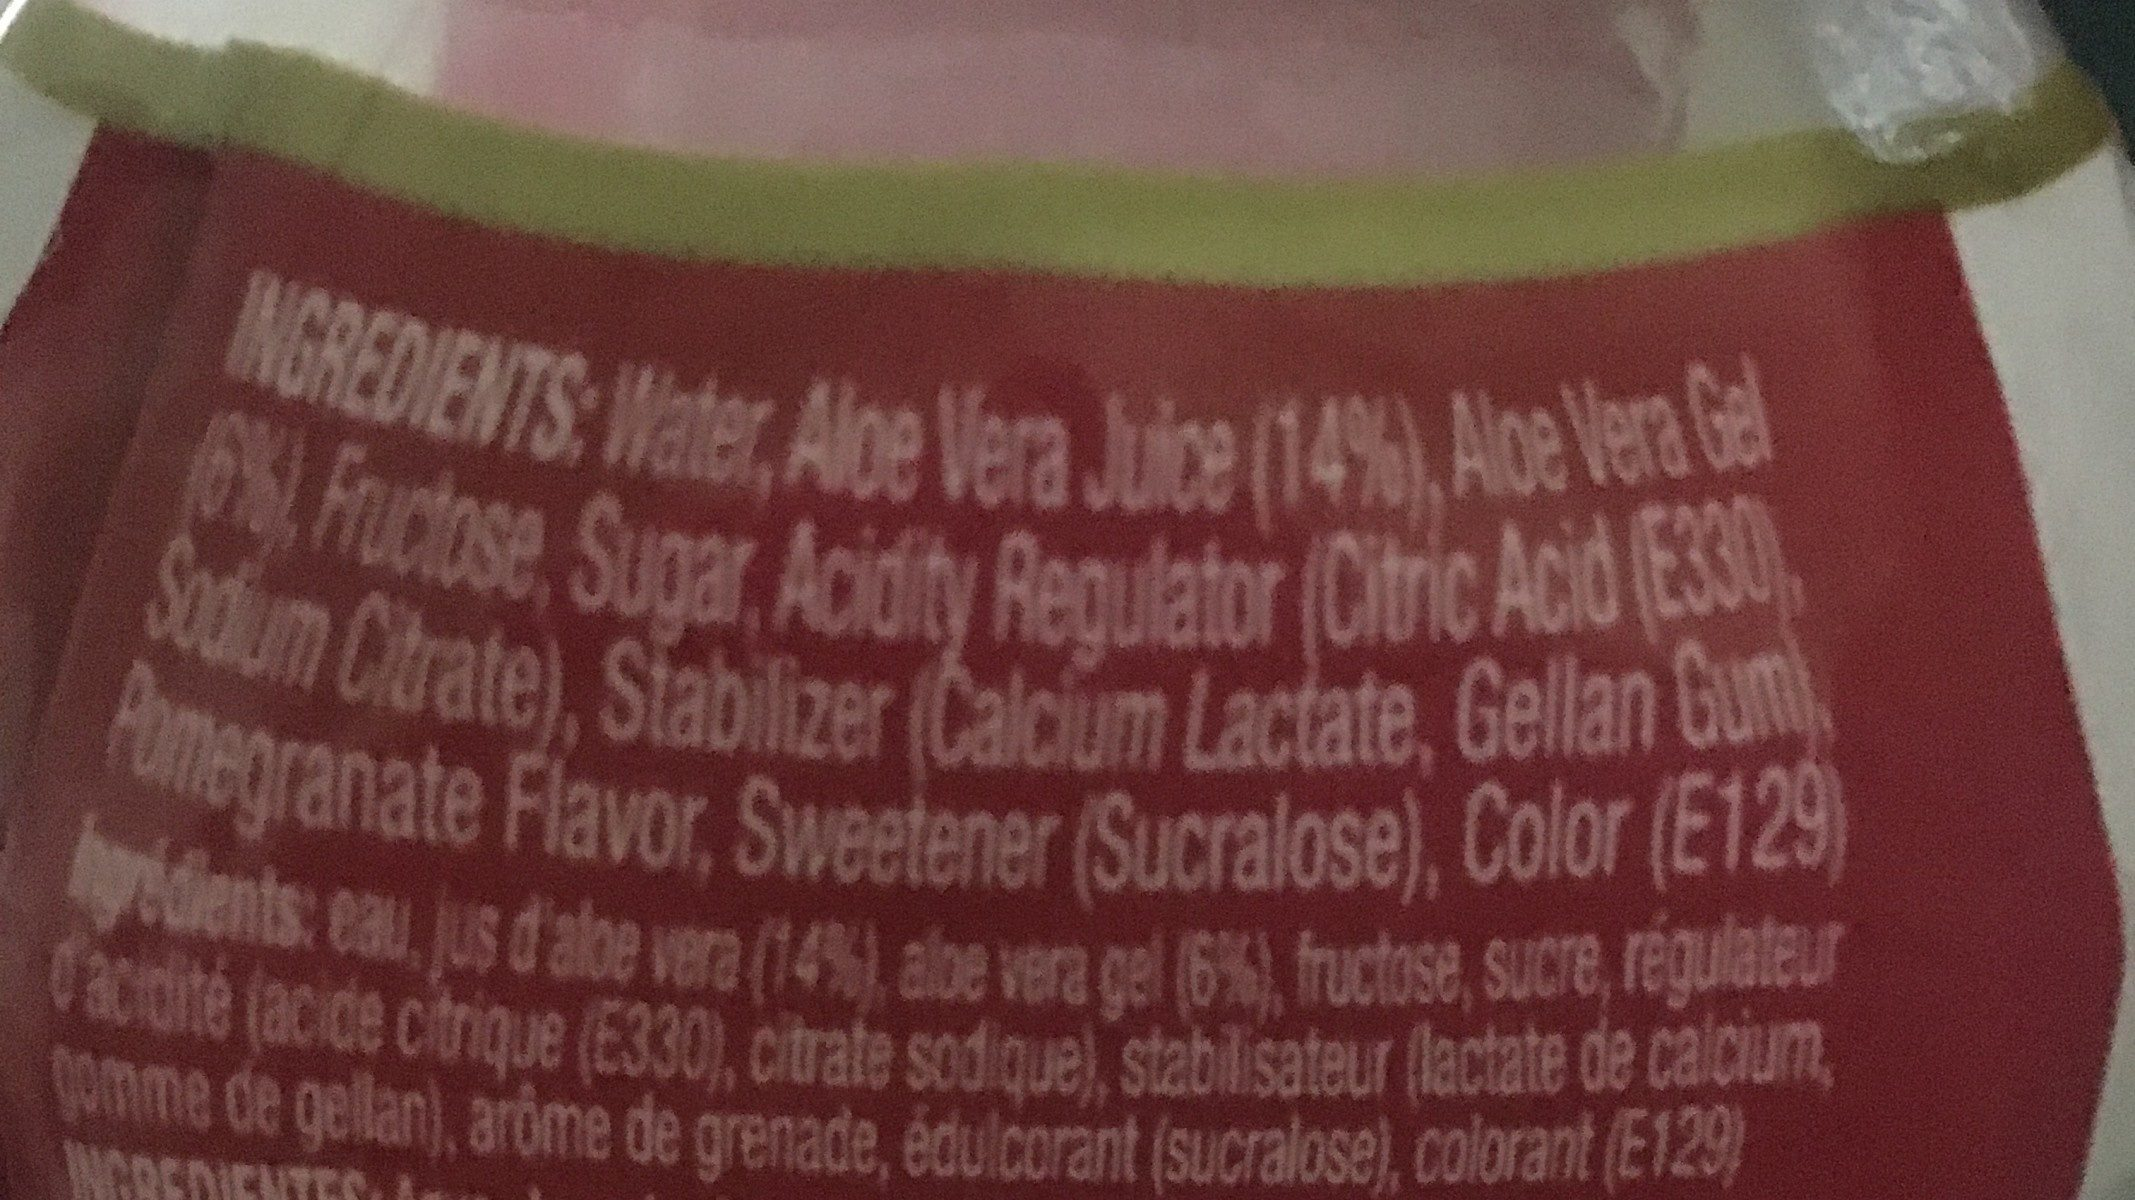 Farmer's Aloe Vera - Ingredients - fr